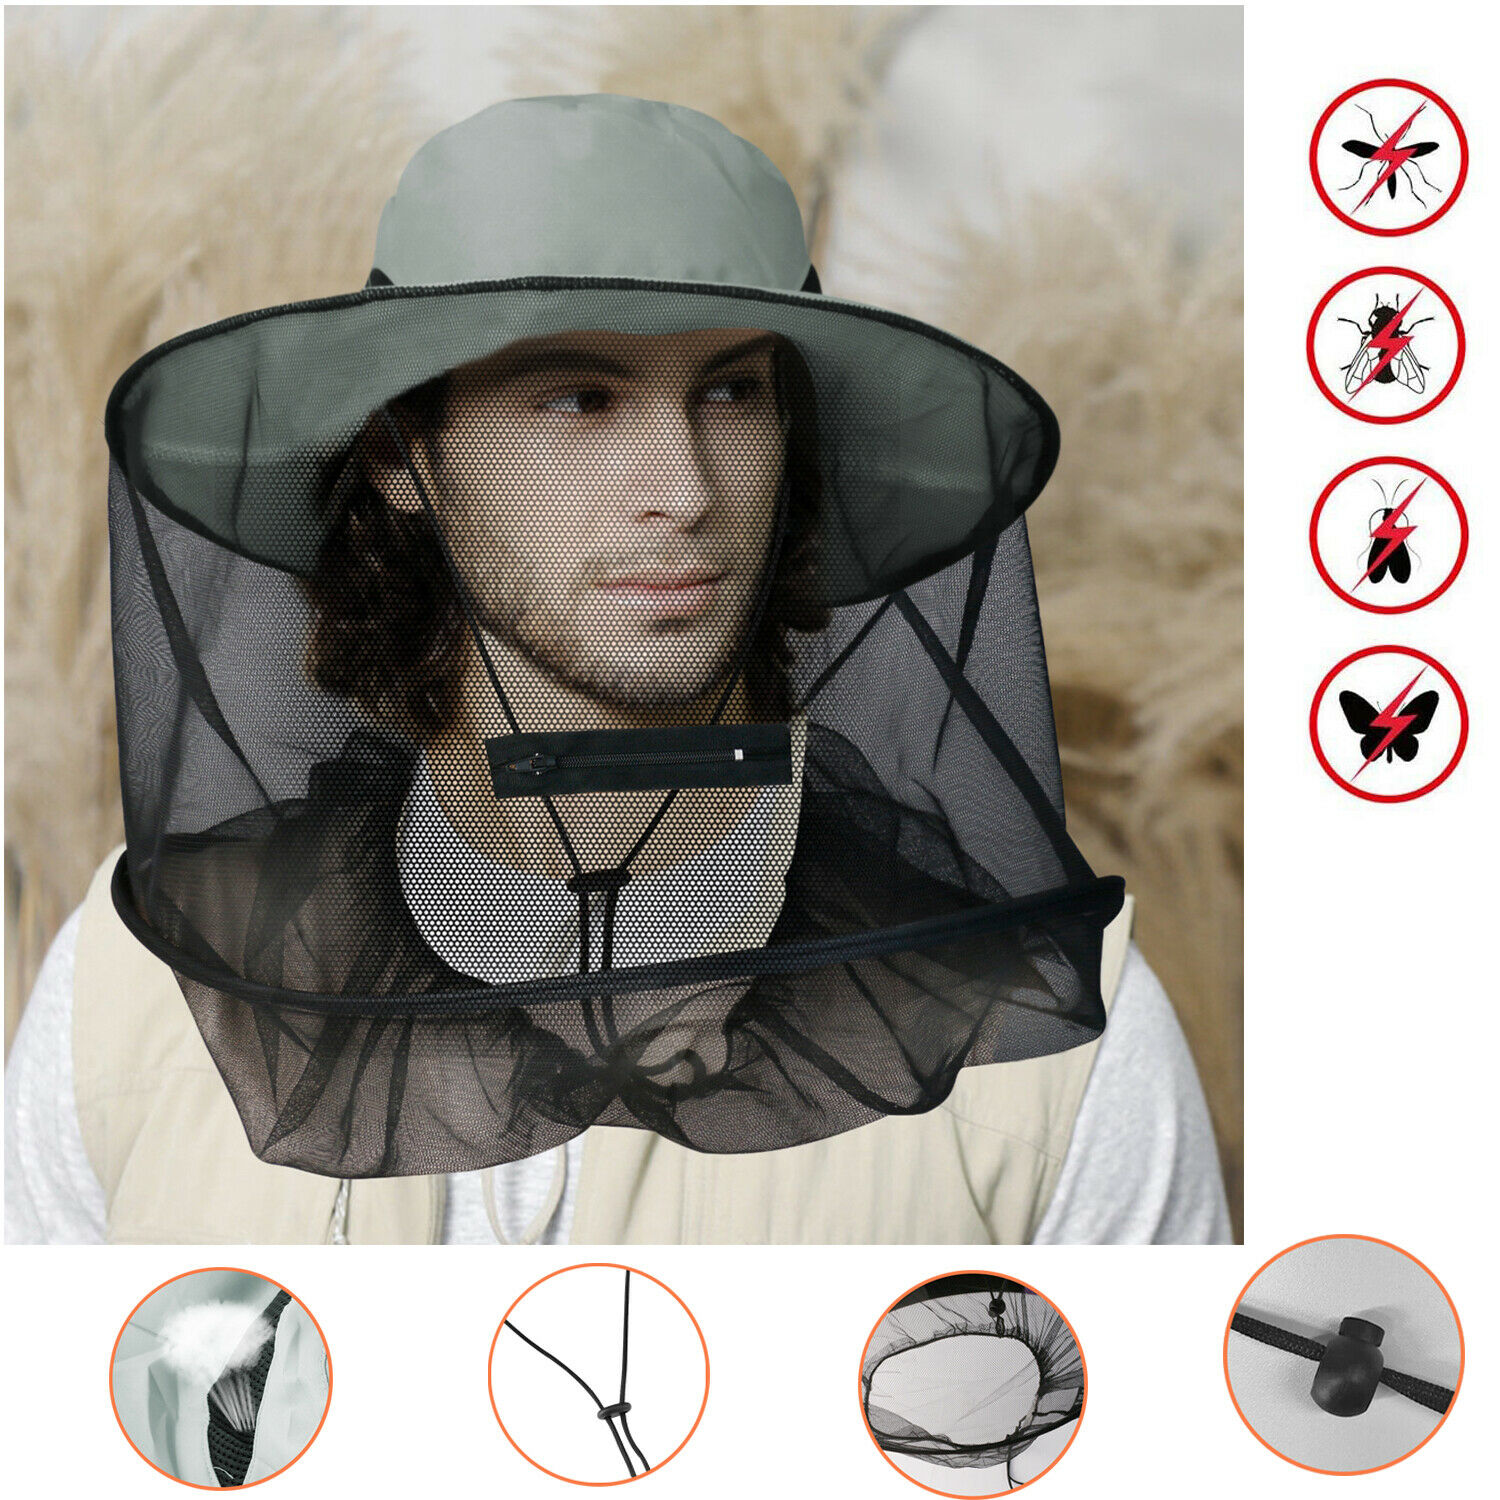 Outdoor Mosquito Head Face Net Hat Sun Insect Bug Protector Mesh Fishing Cap Camping & Hiking